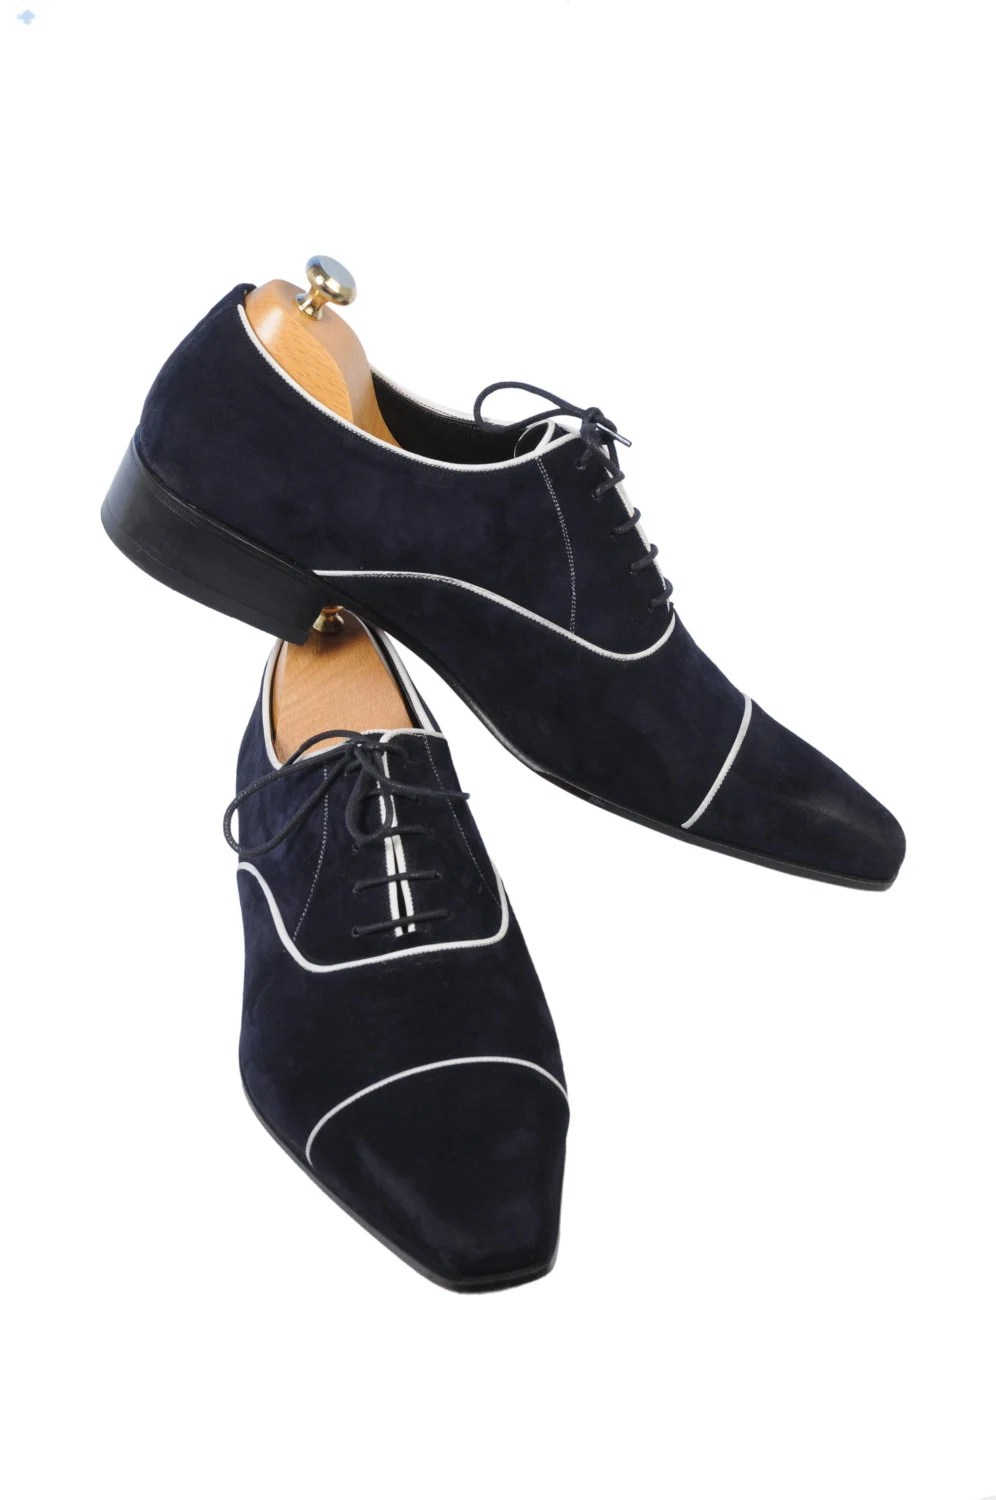 Handmade Special Design Luxury Navy Blue Mens Shoes - UstabasShoes